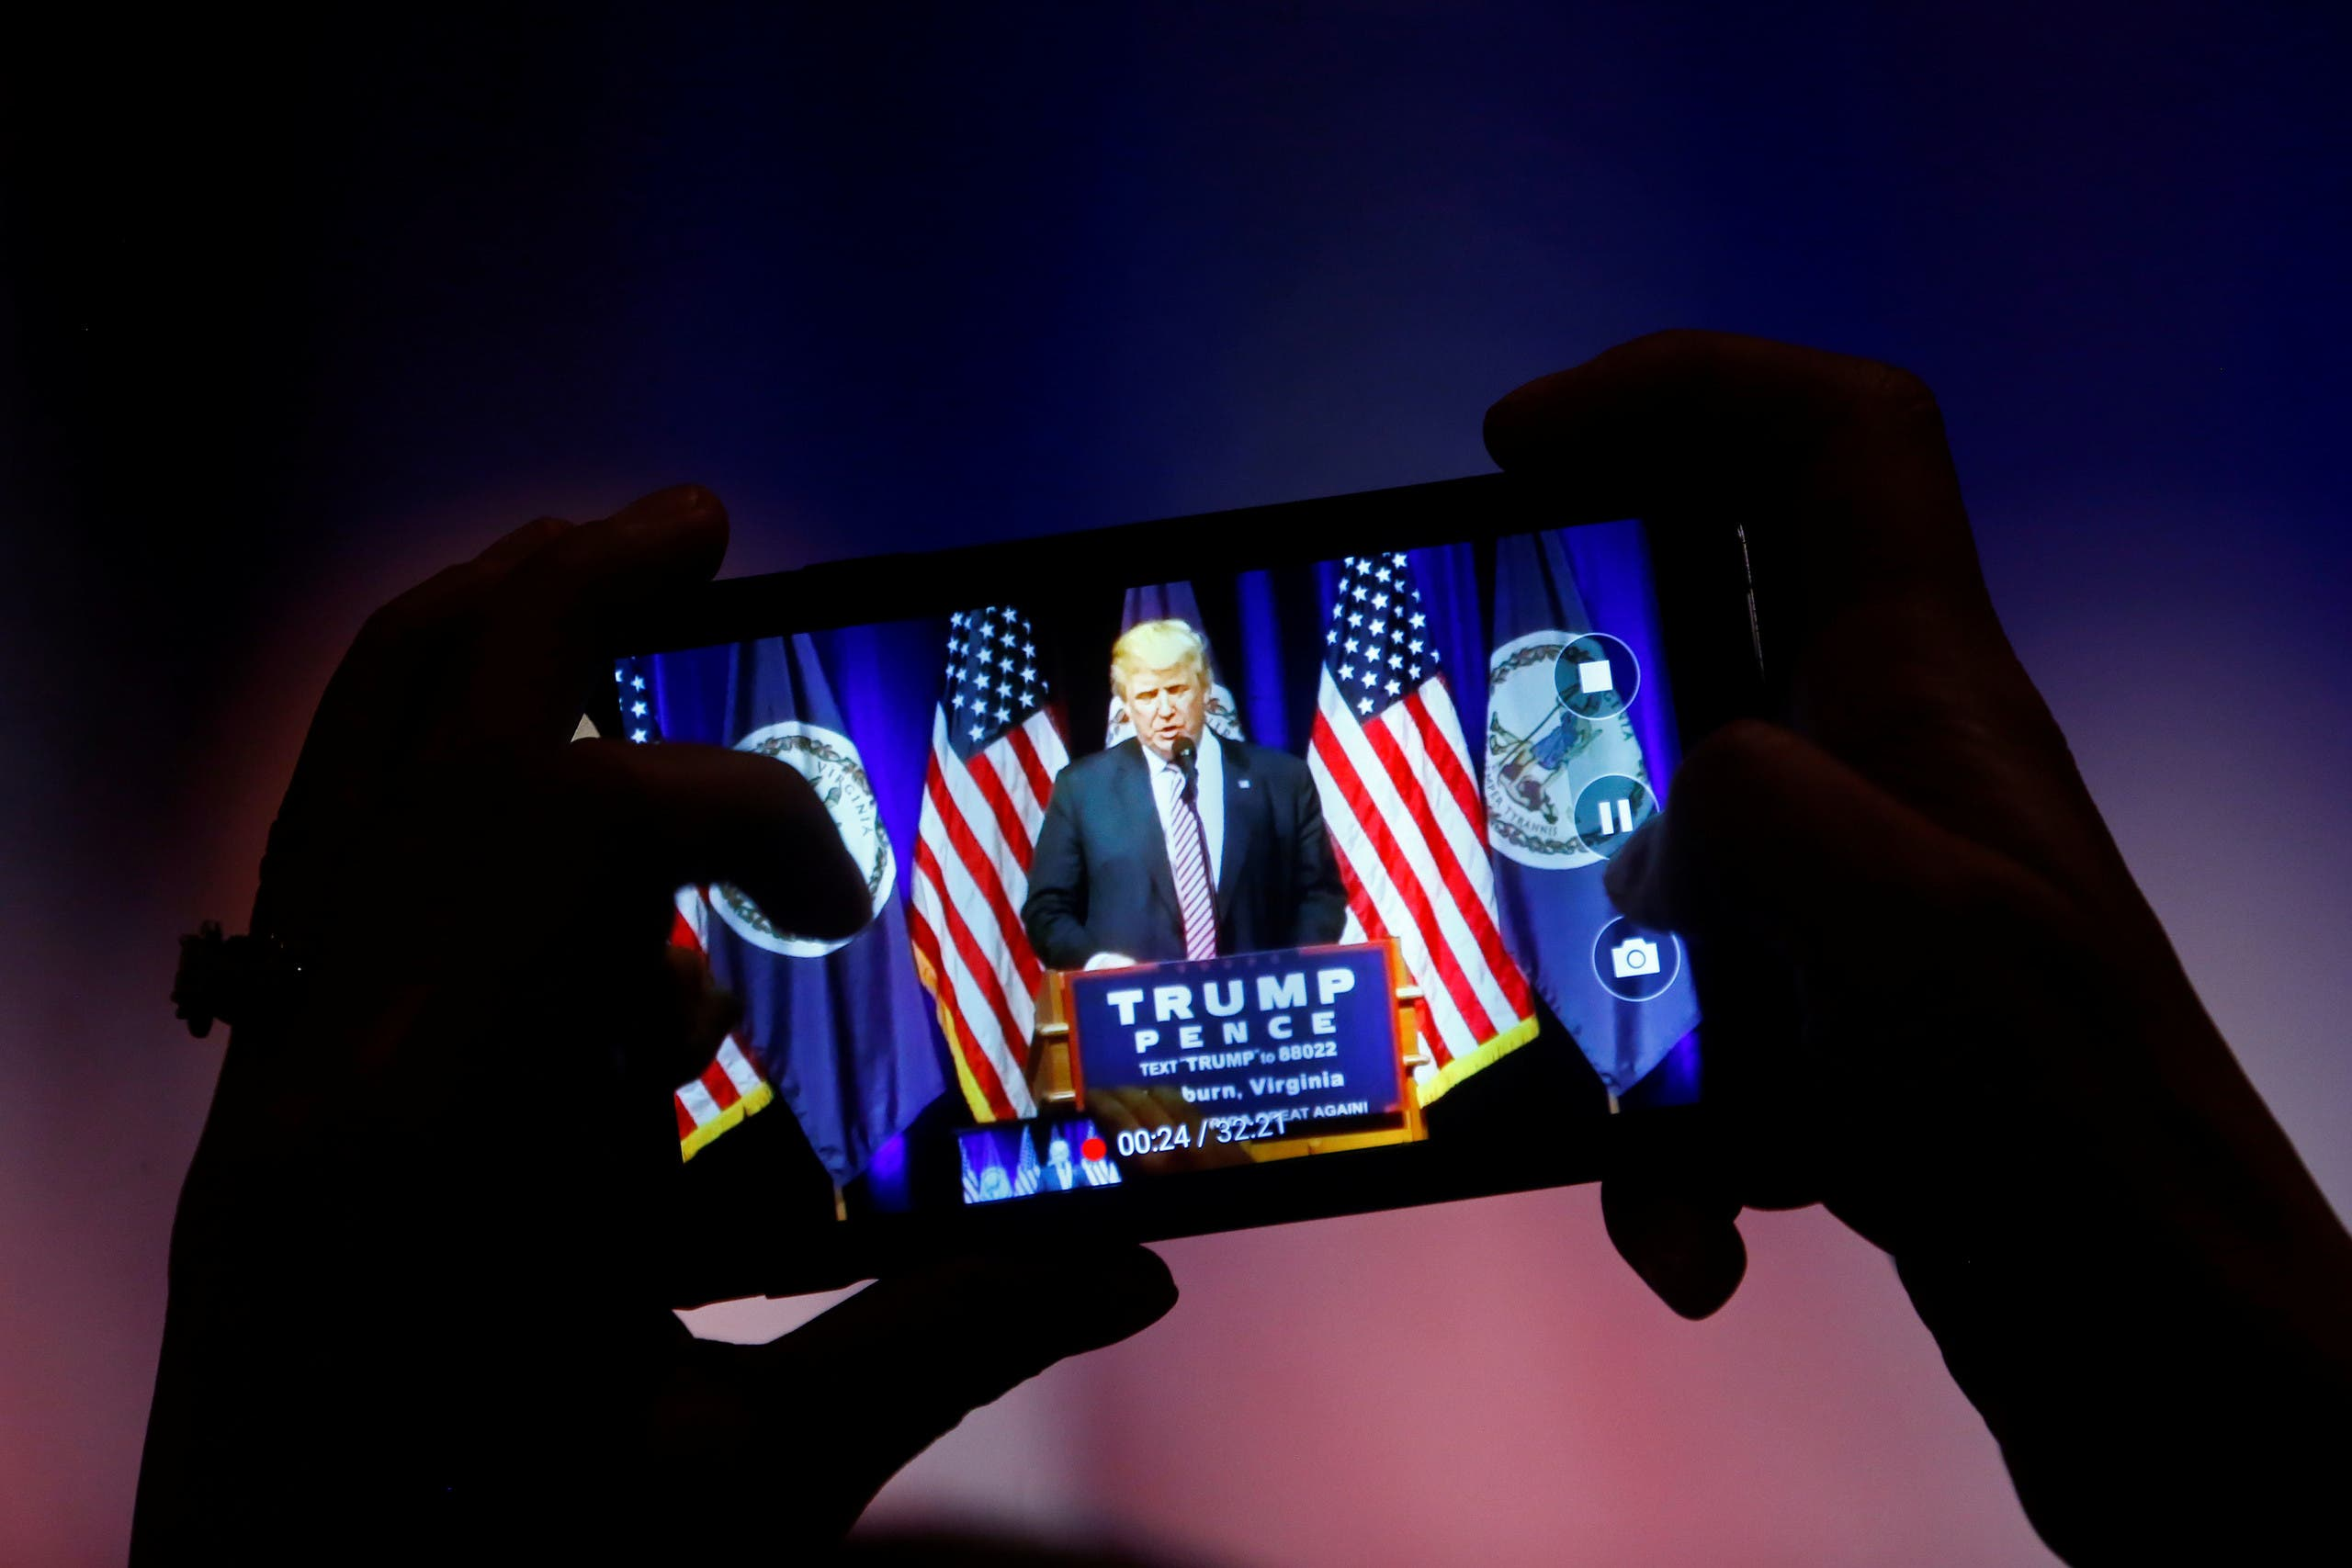 A supporter photographs Republican U.S. Presidential nominee Donald Trump during a campaign event at Briar Woods High School in Ashburn, Virginia, U.S., August 2, 2016. (Reuters)